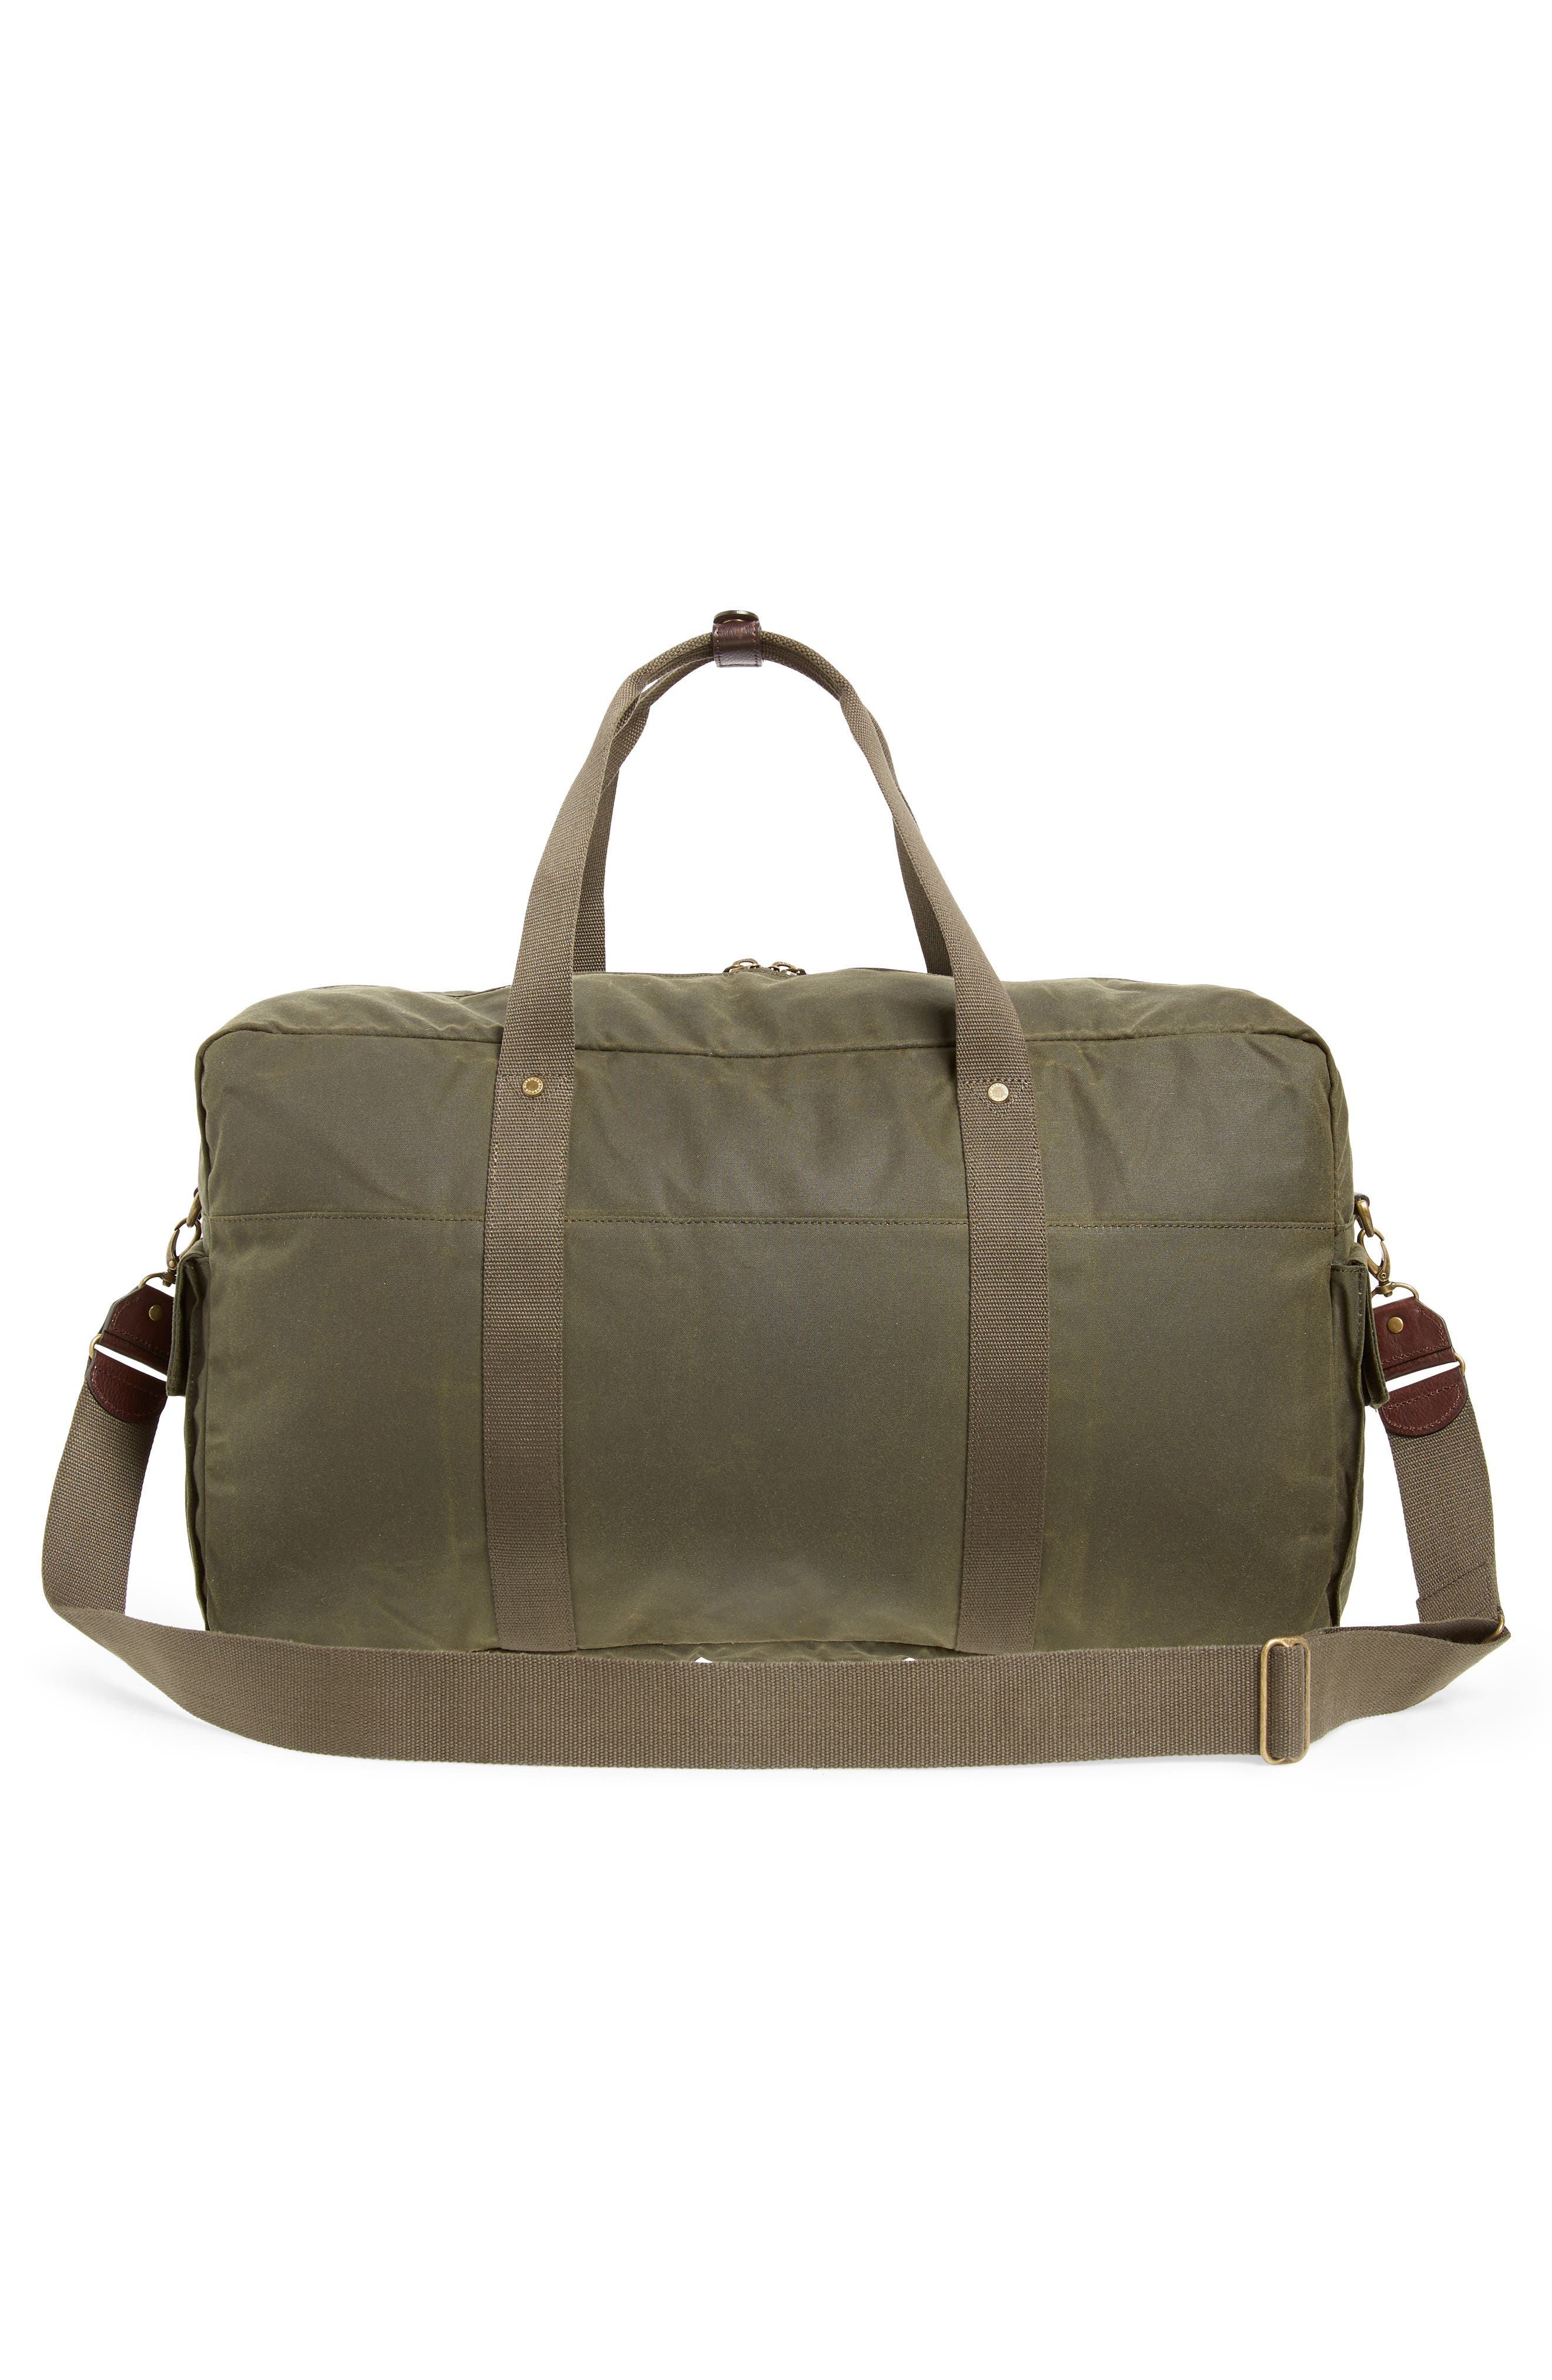 Oakwell Duffel Bag,                             Alternate thumbnail 3, color,                             ARCHIVE OLIVE